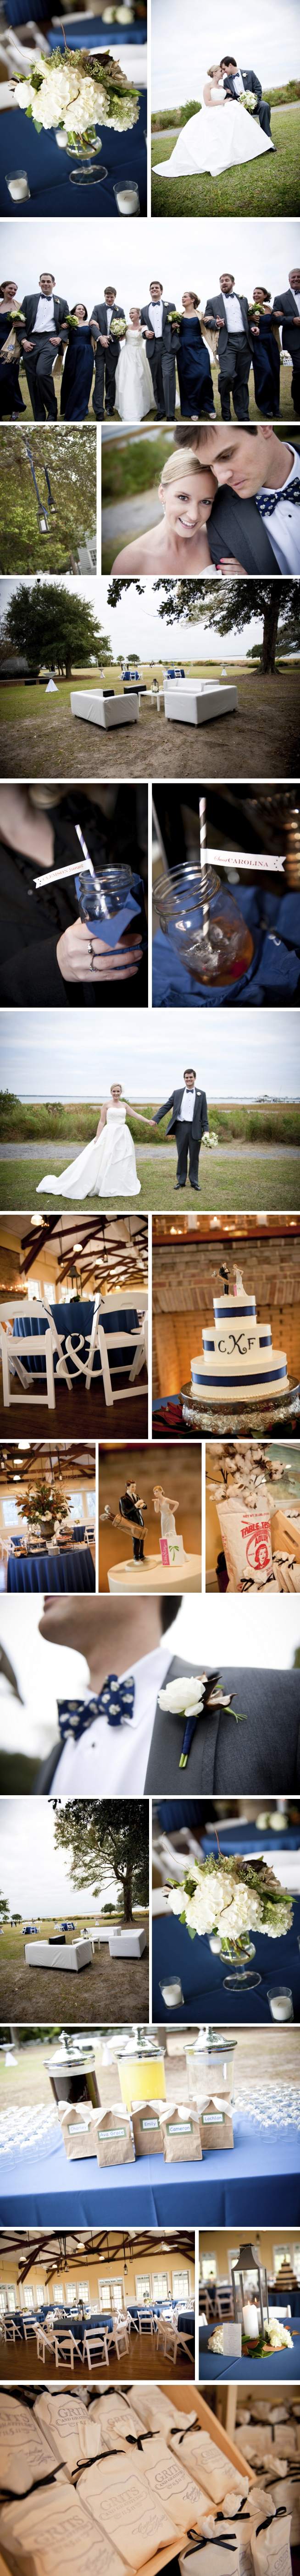 wedding blogs | southern Weddings